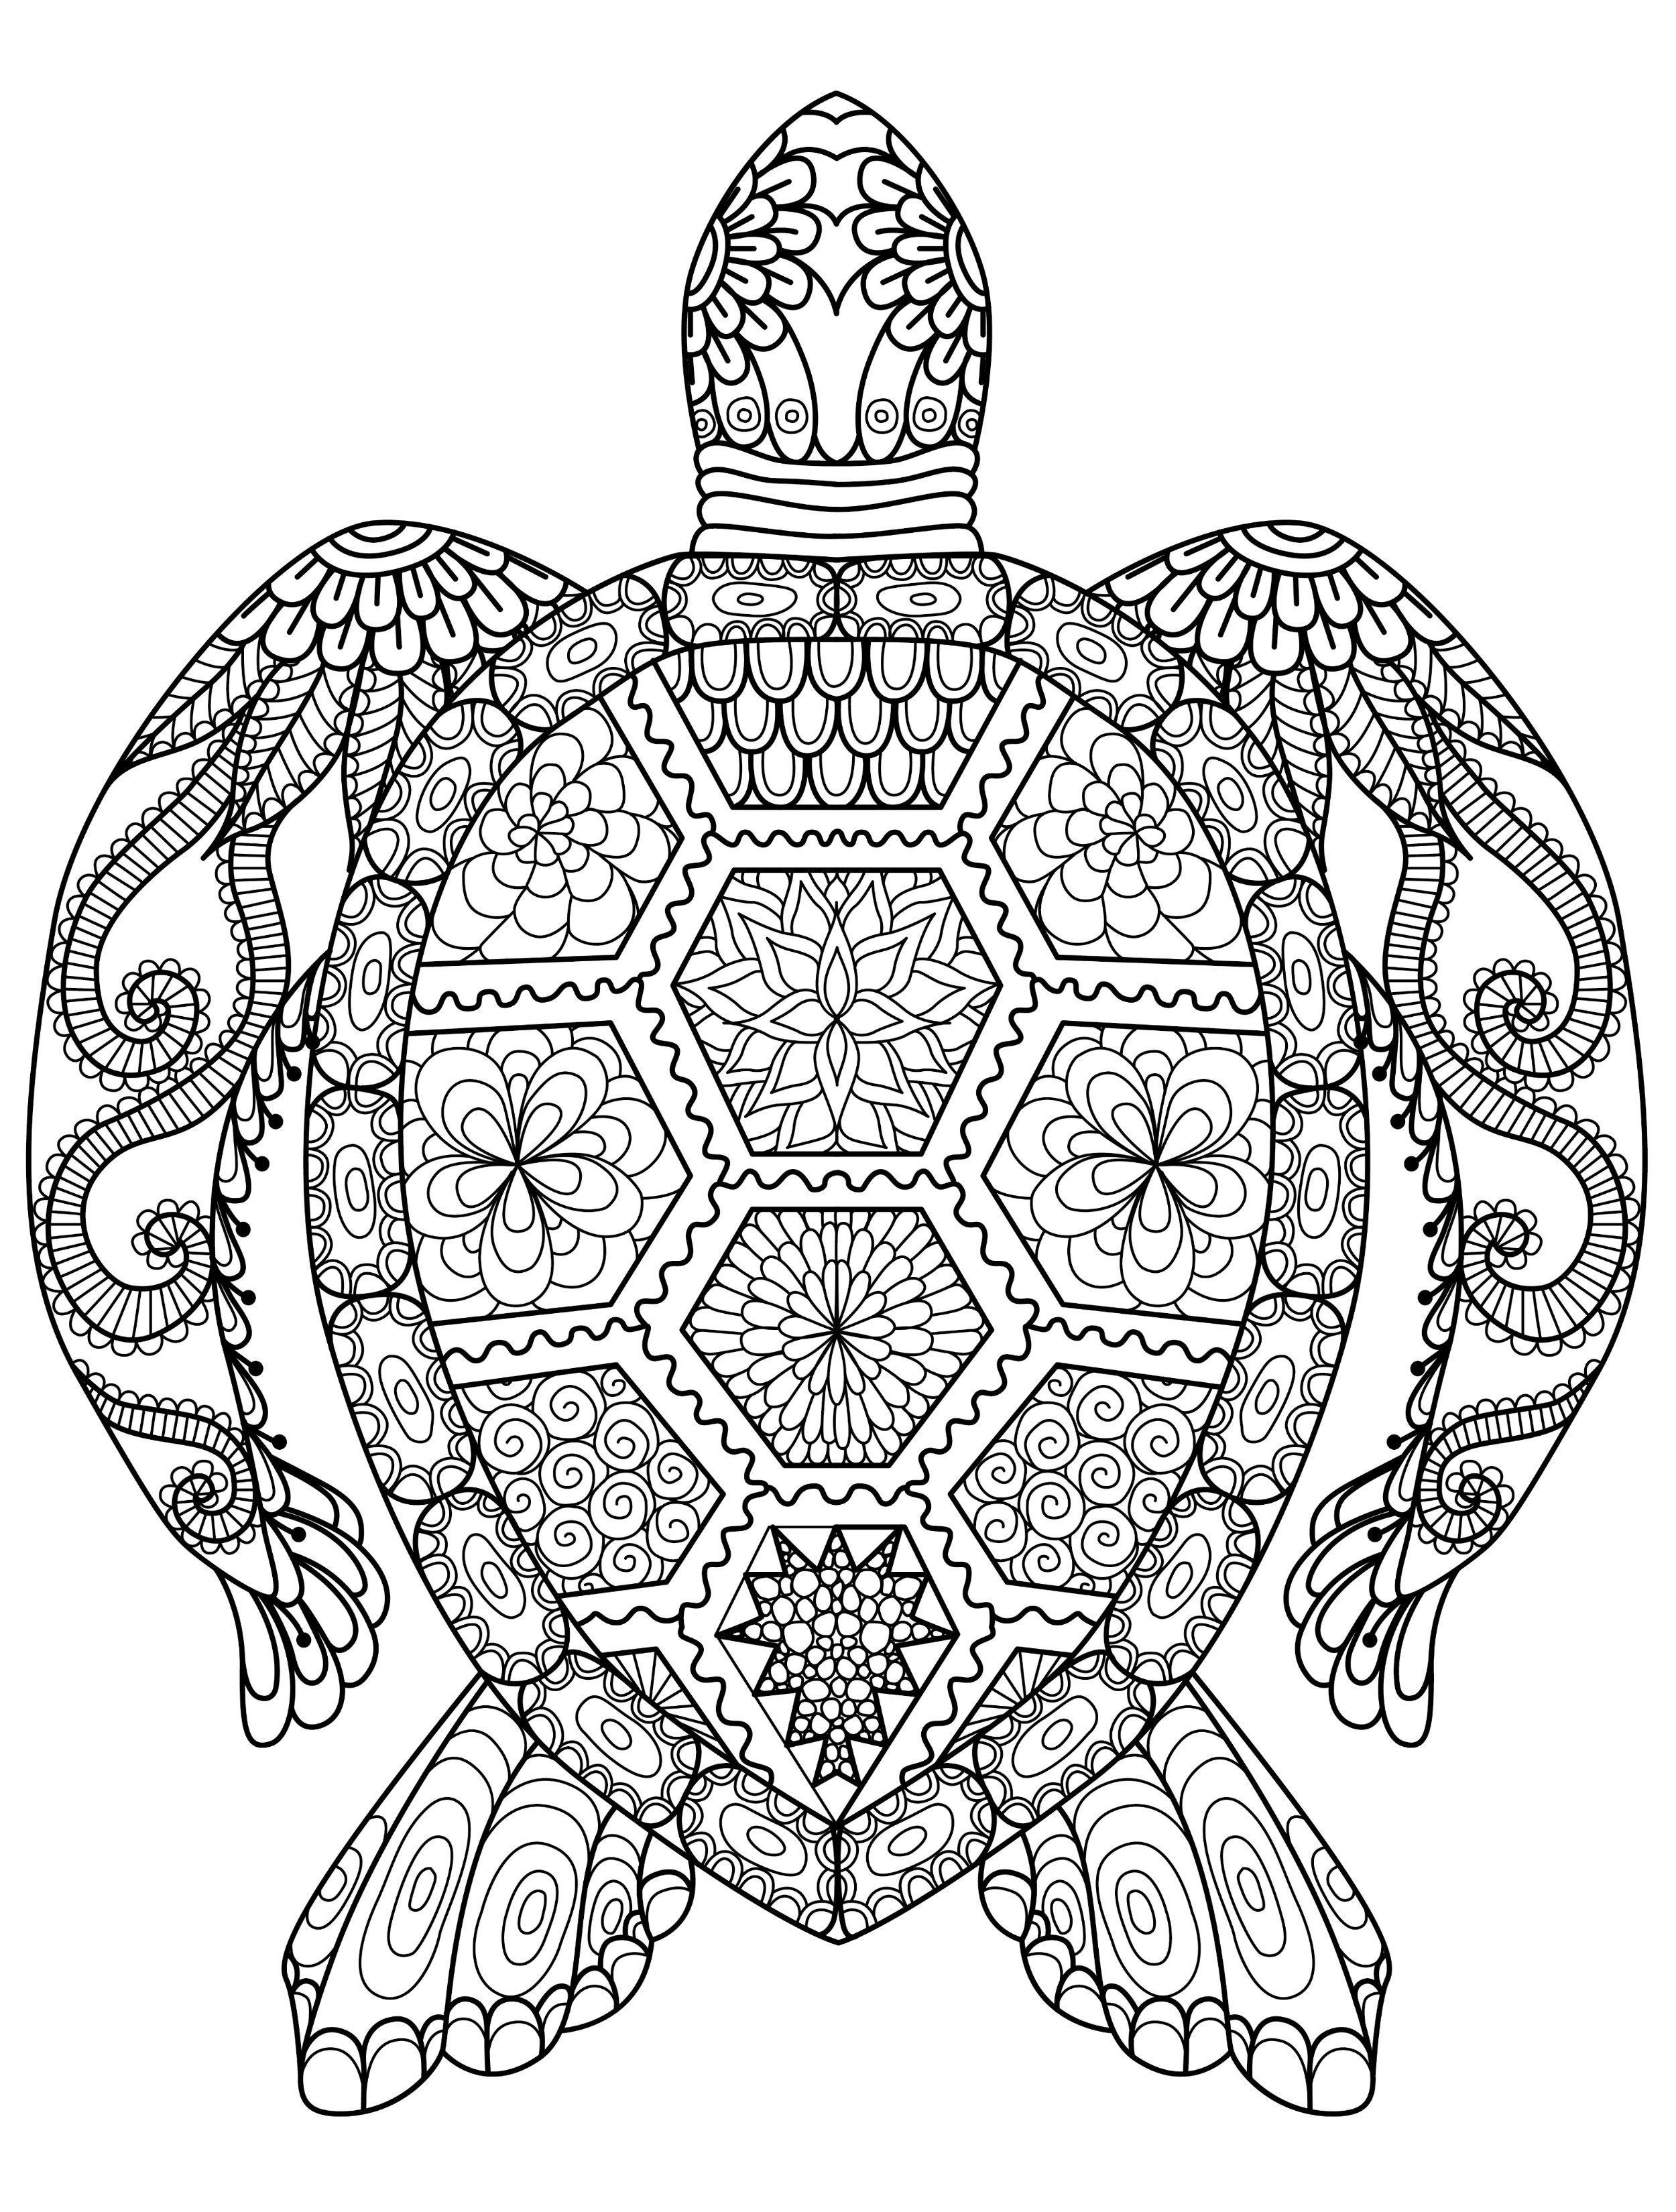 1000+ images about Adult and Children\'s Coloring Pages on ... | 002 ...